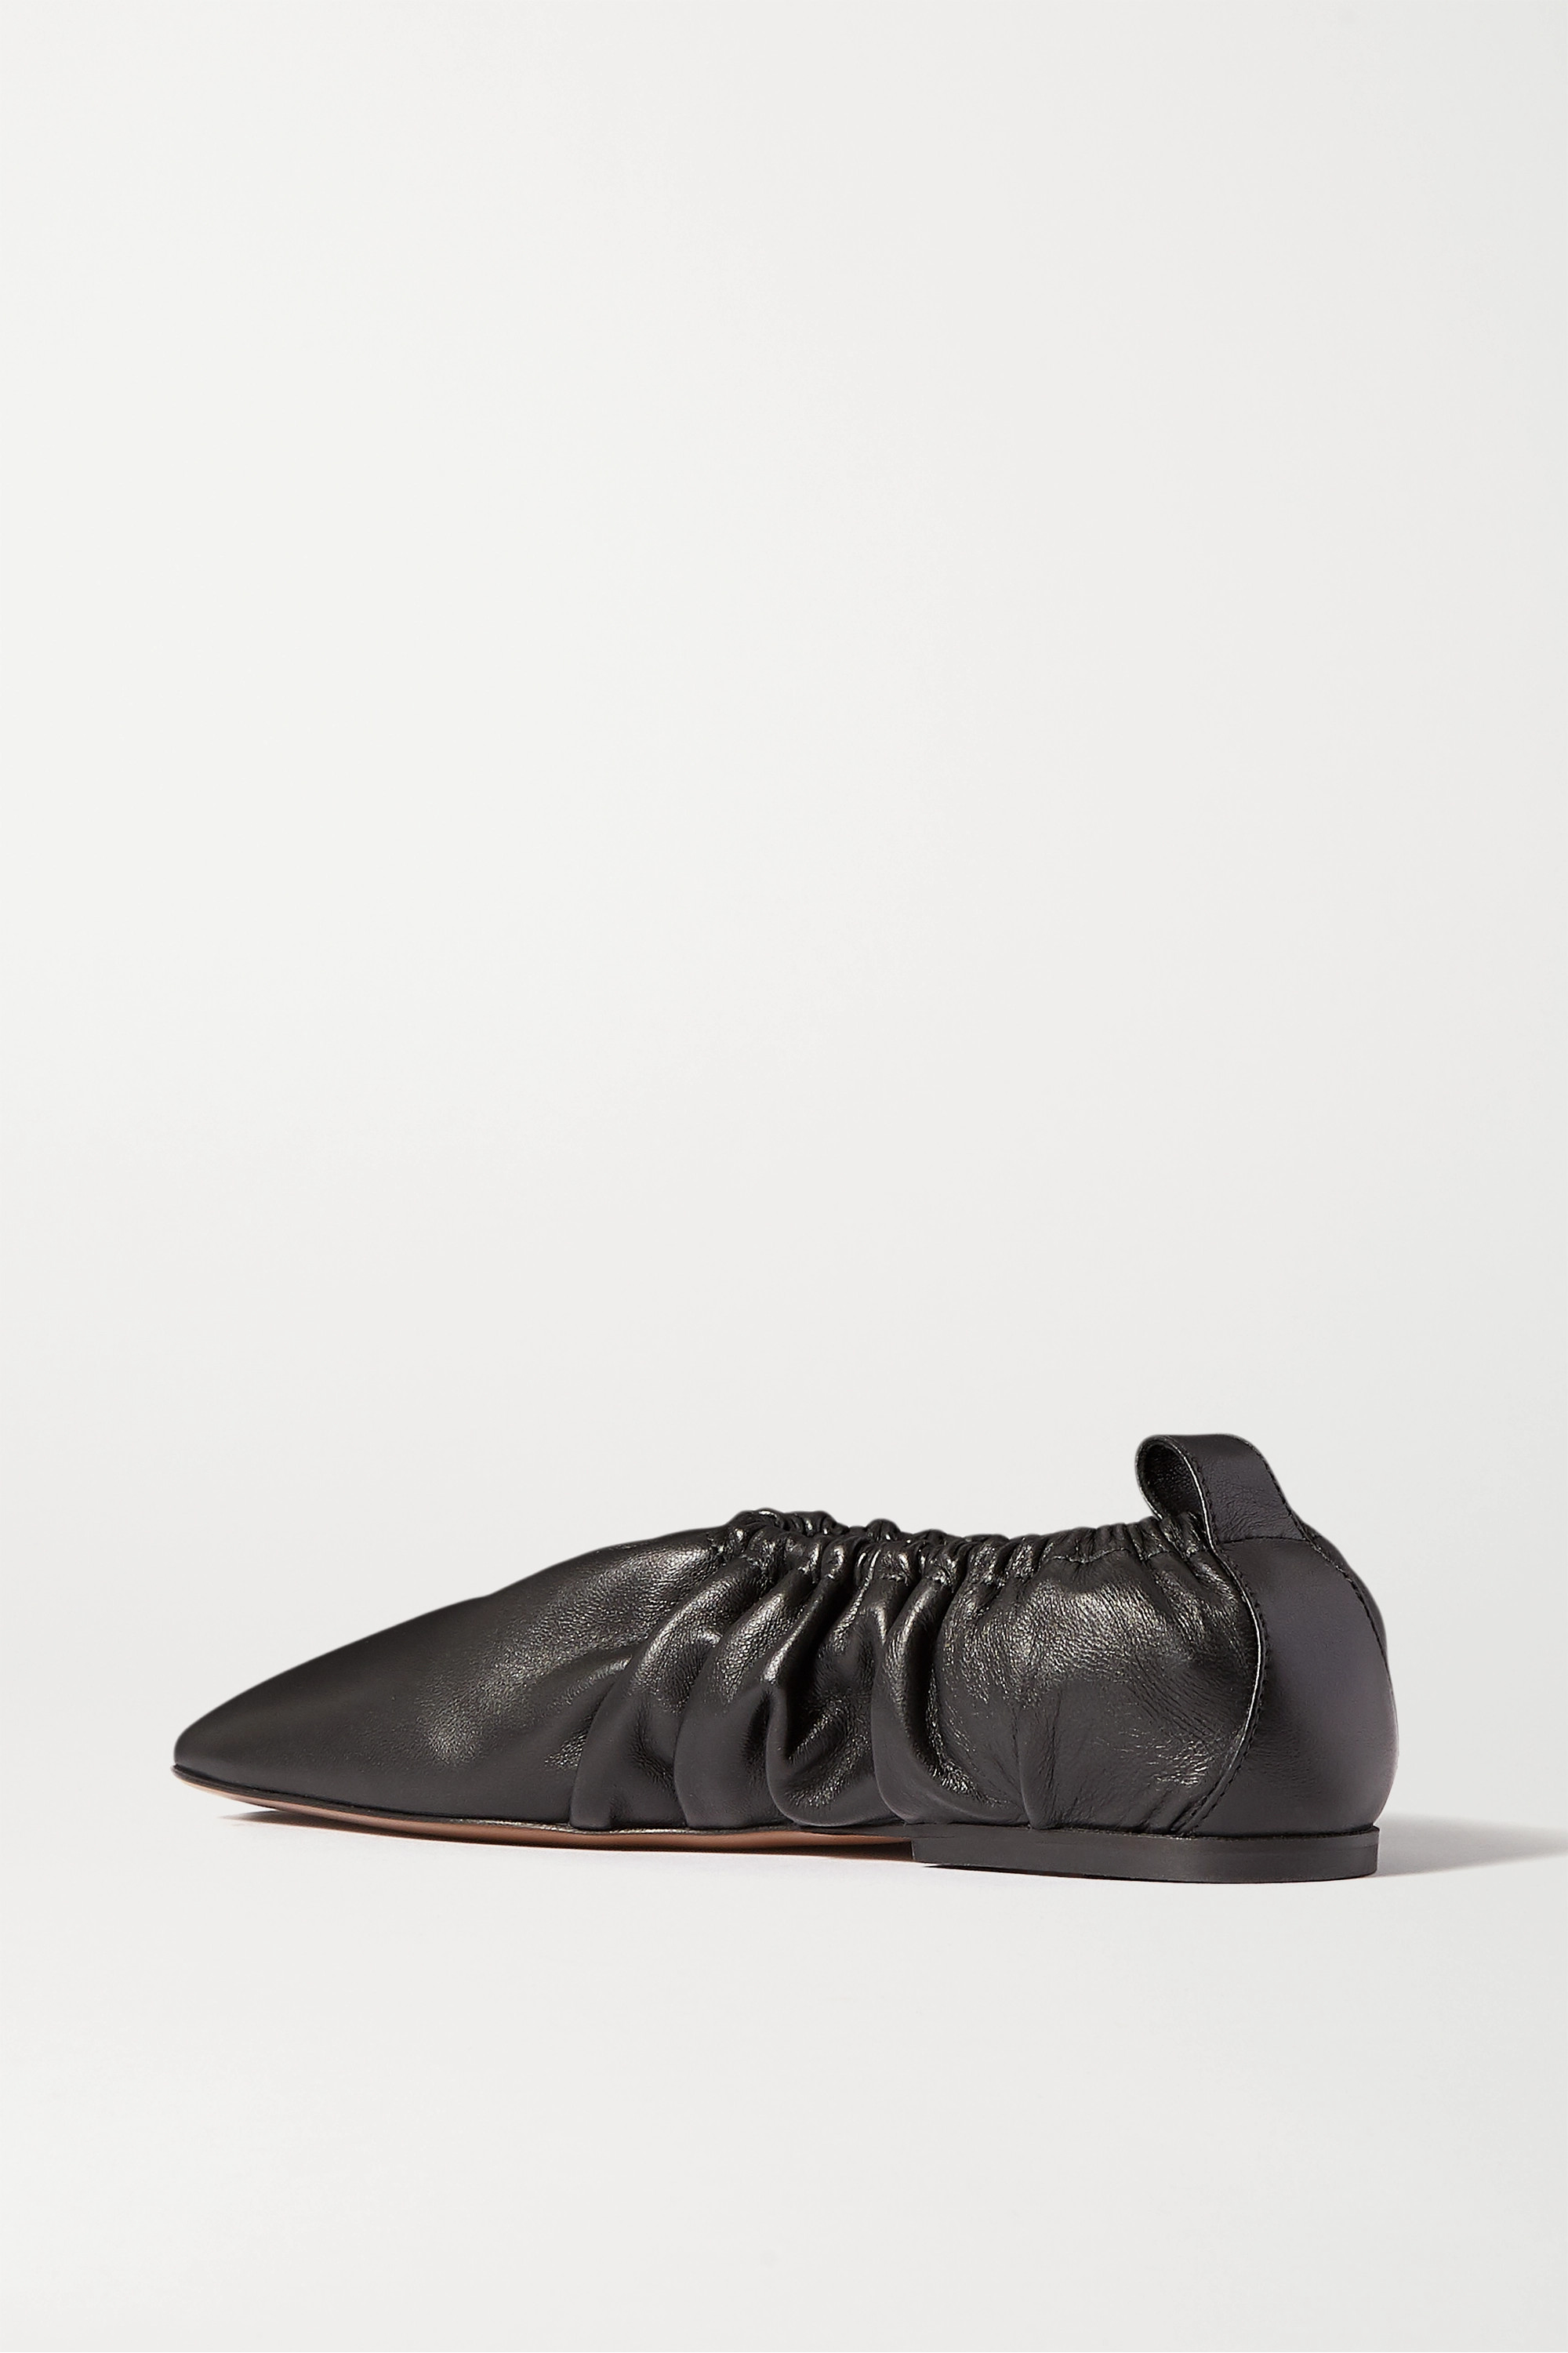 Neous Phinia gathered leather ballet flats